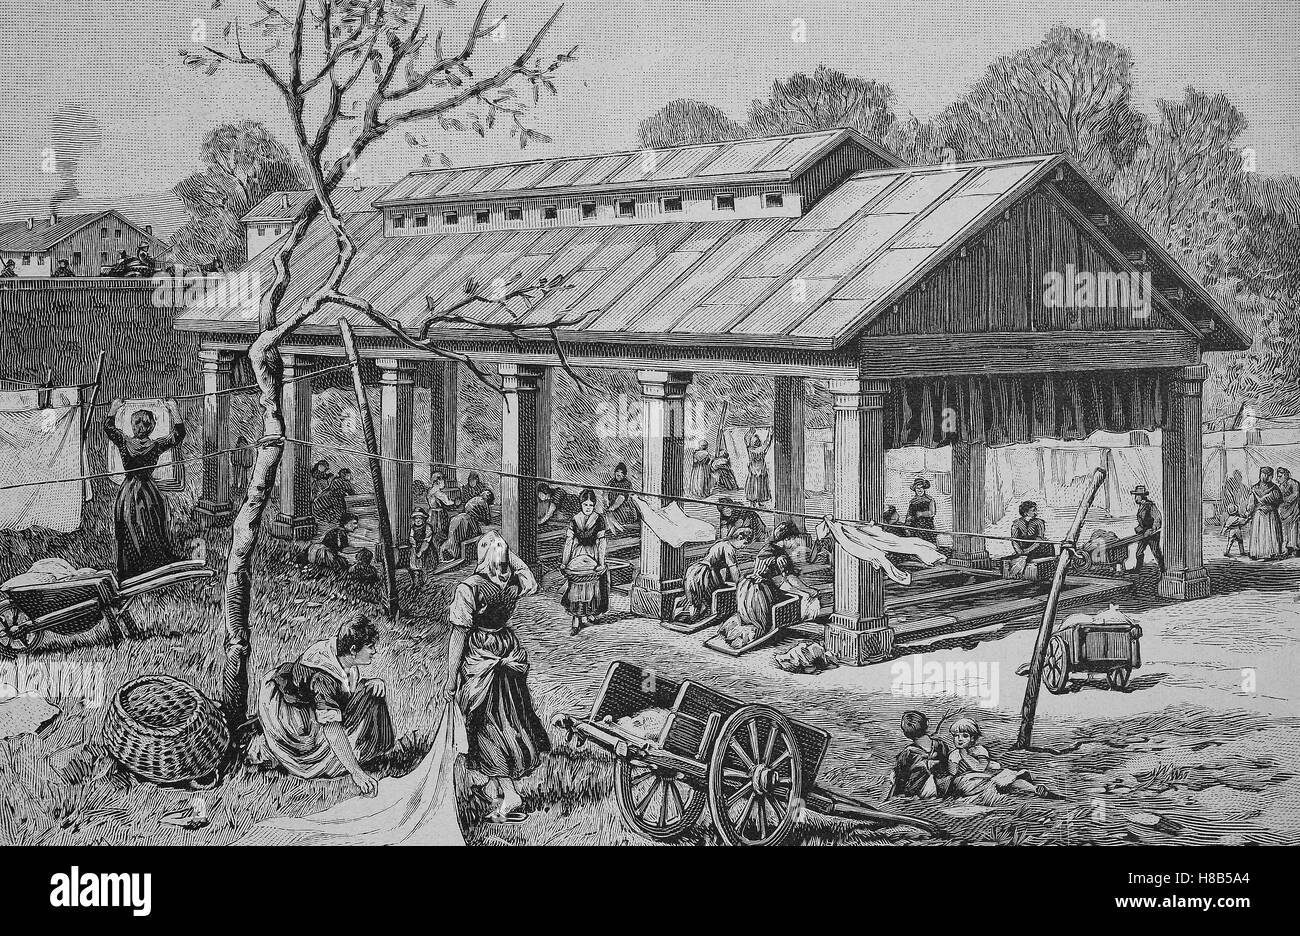 public wash house in Northern Italy, Woodcut from 1892 - Stock Image